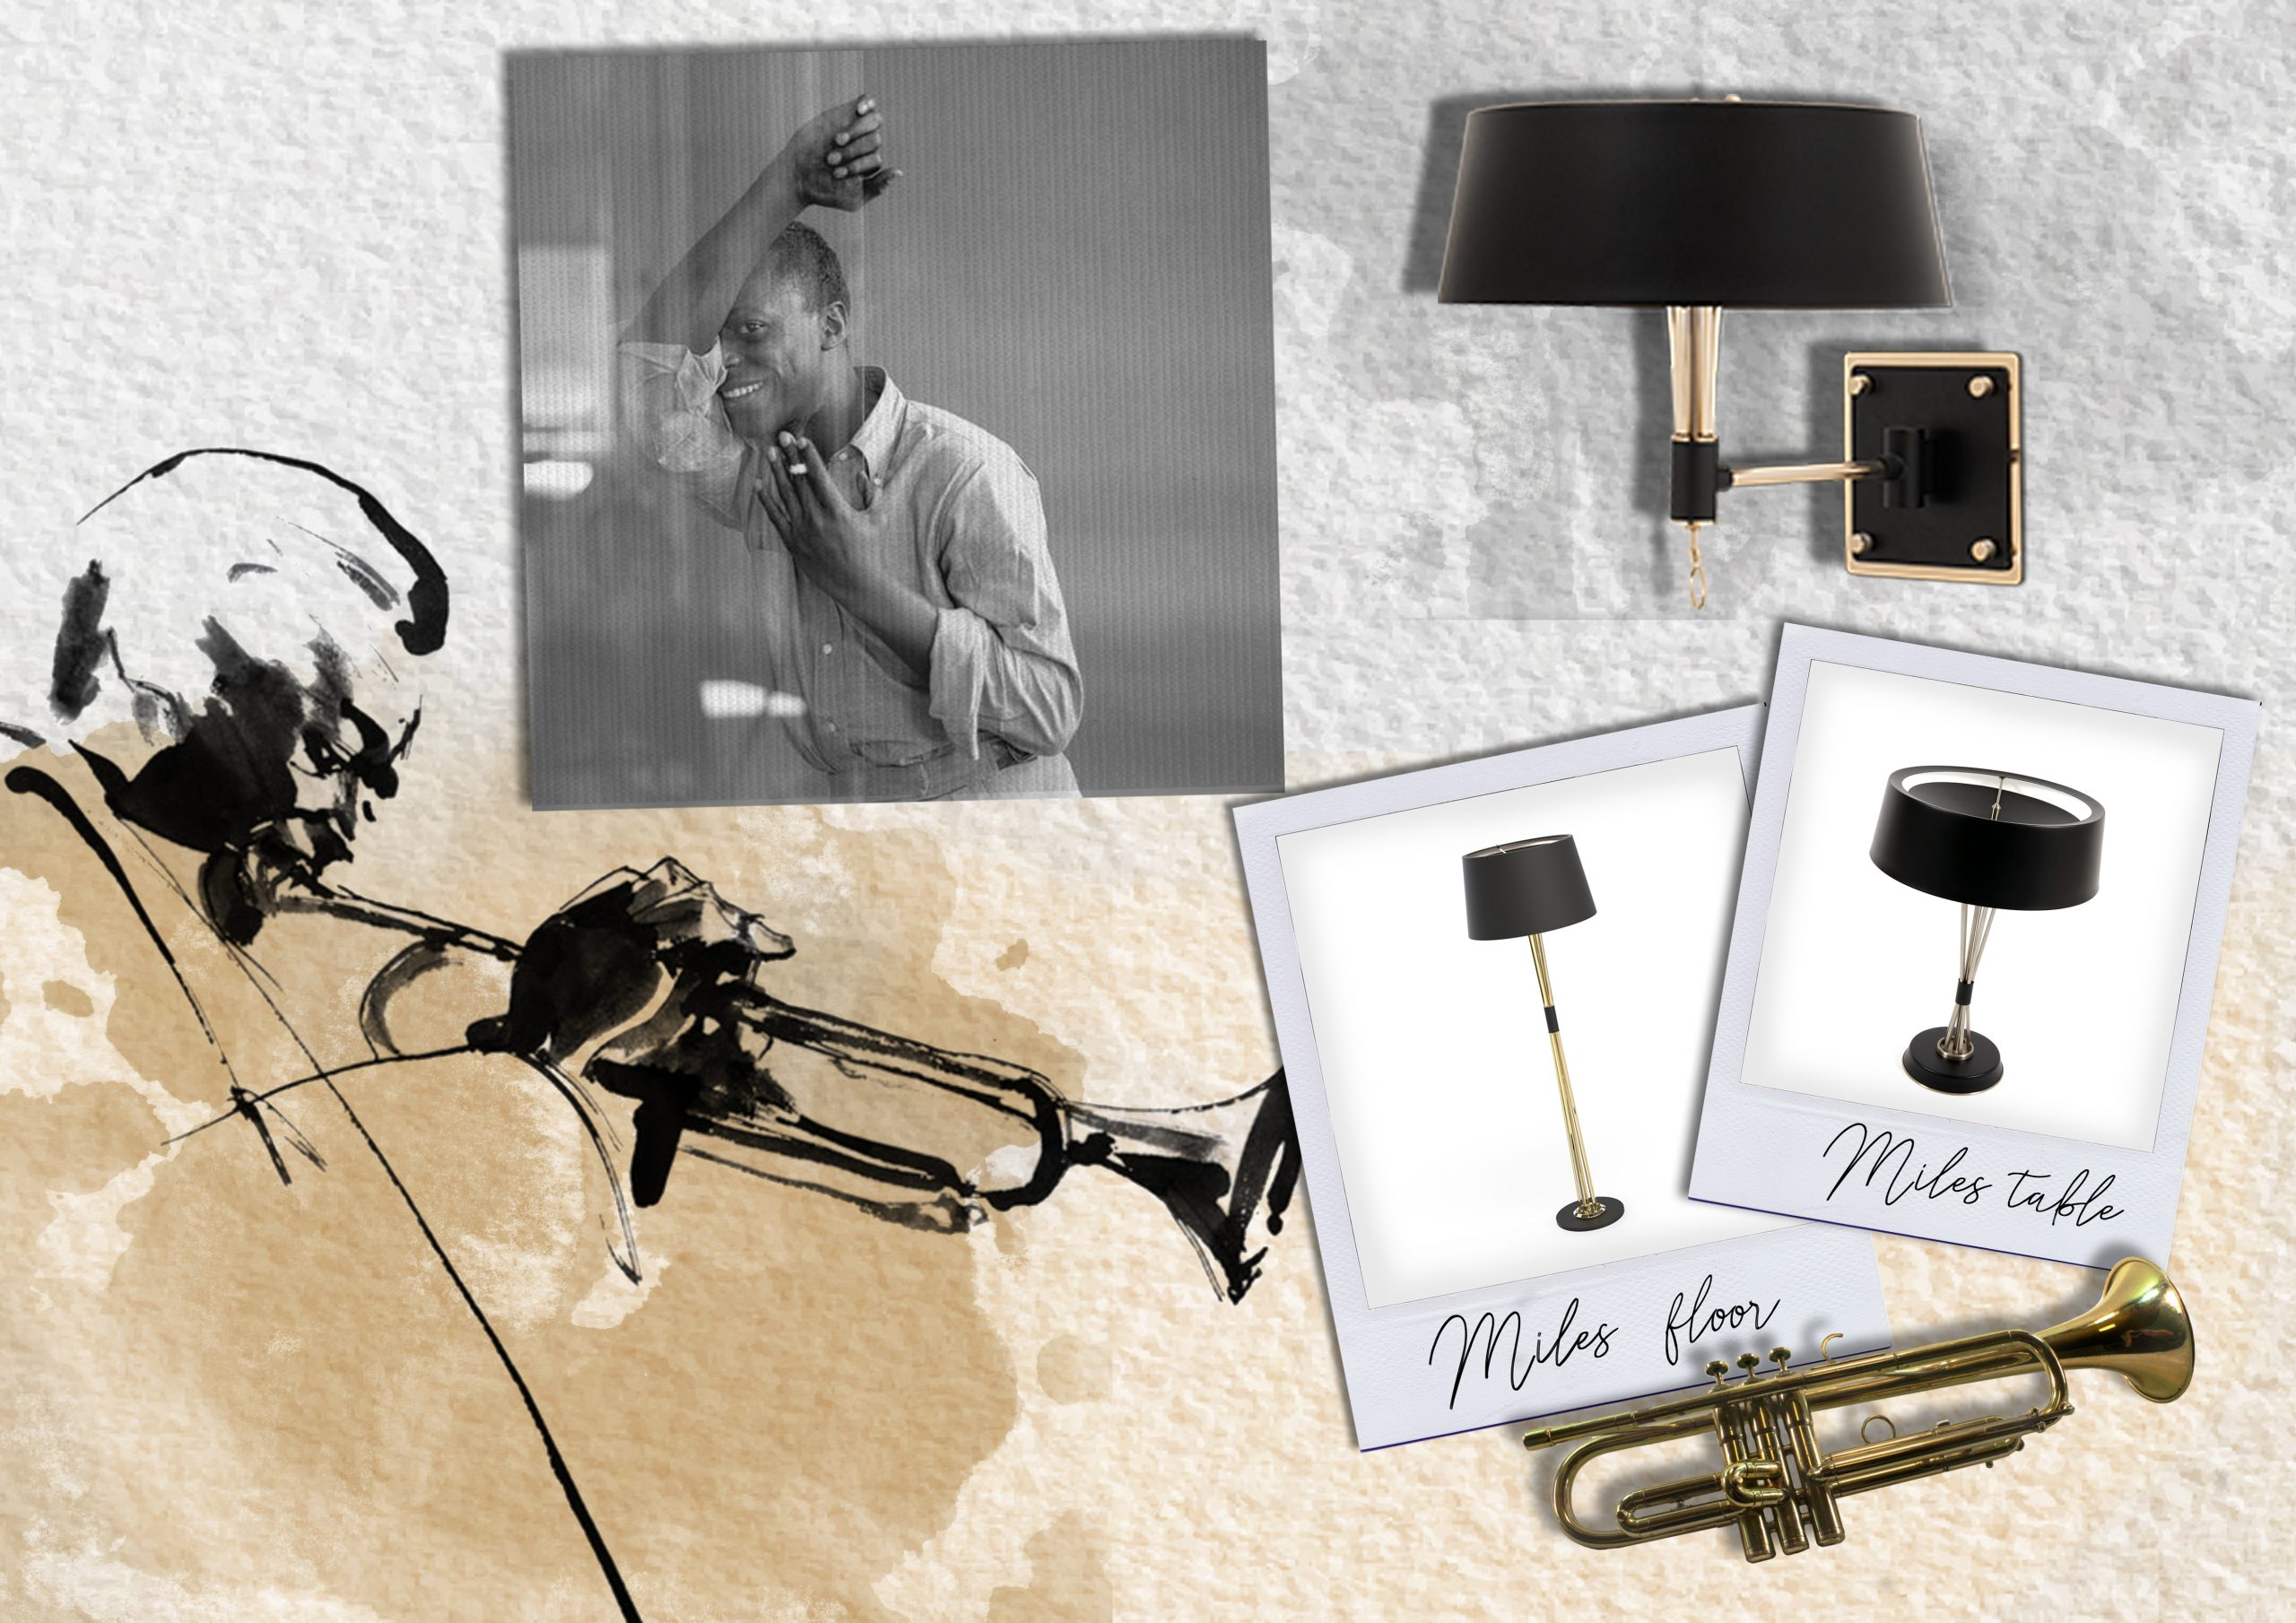 black history month black history month Celebrate Black History Month With These Unique Floor Lamps Ideas! Celebrate Black History Month With These Unique Floor Lamps Ideas1 scaled